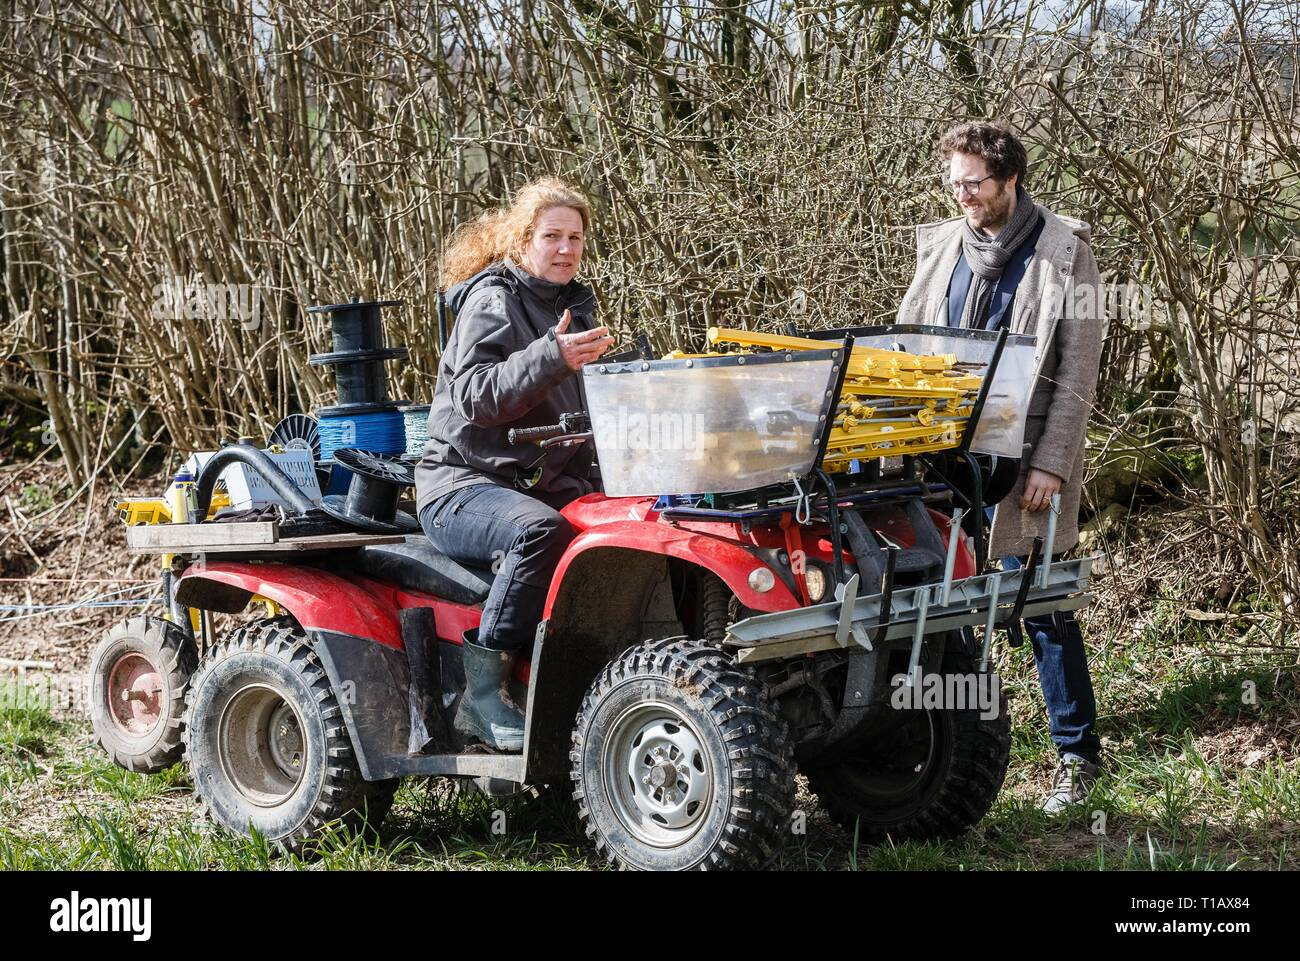 25 March 2019, Schleswig-Holstein, Fahrdorf: Professional shepherd Uta Wree explains Jan Philipp Albrecht (Bündnis90/Grüne), Minister of Agriculture in Schleswig-Holstein, her mobile winding system for electric fences, which is now being tested for wolf defence. Photo: Markus Scholz/dpa - Stock Image